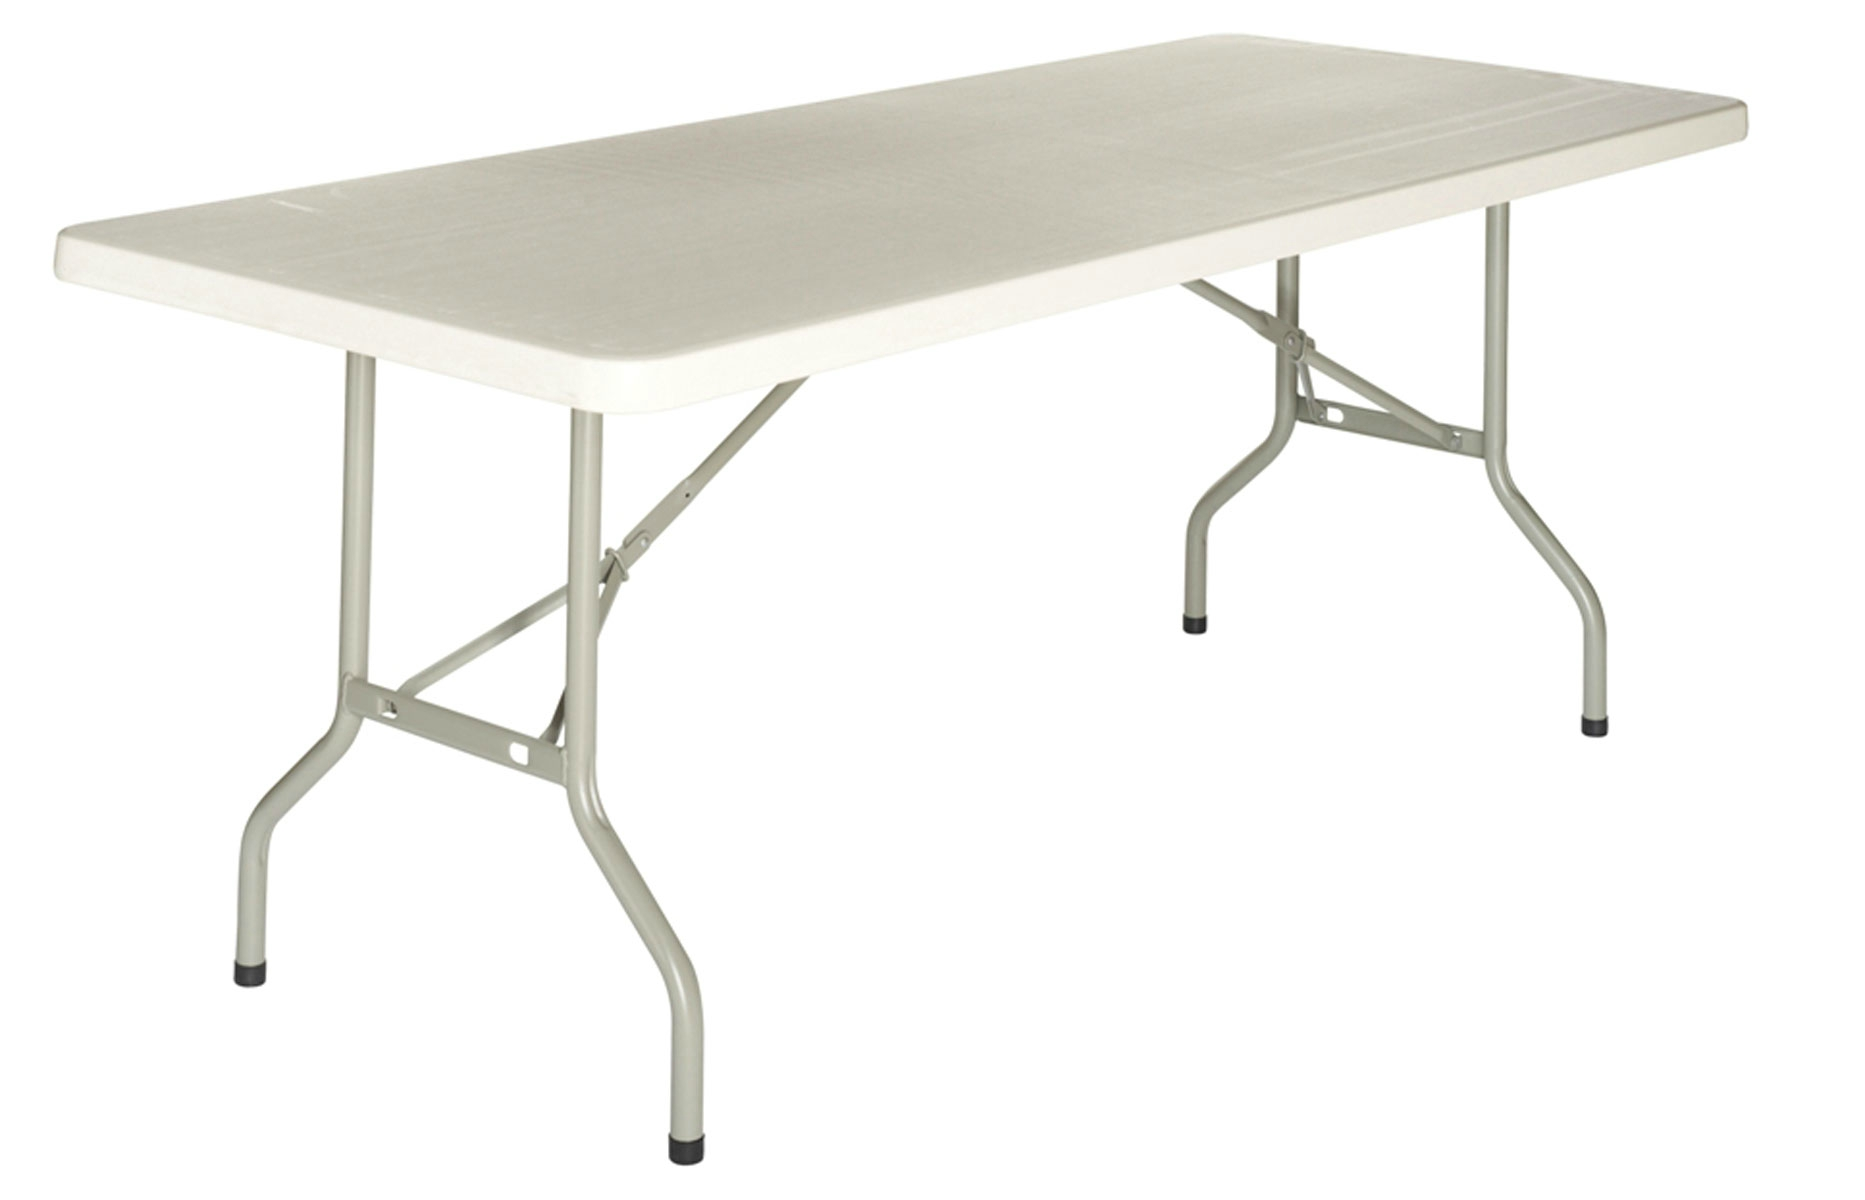 Pied table pliant castorama table de lit - Table cuisine pliante pas cher ...